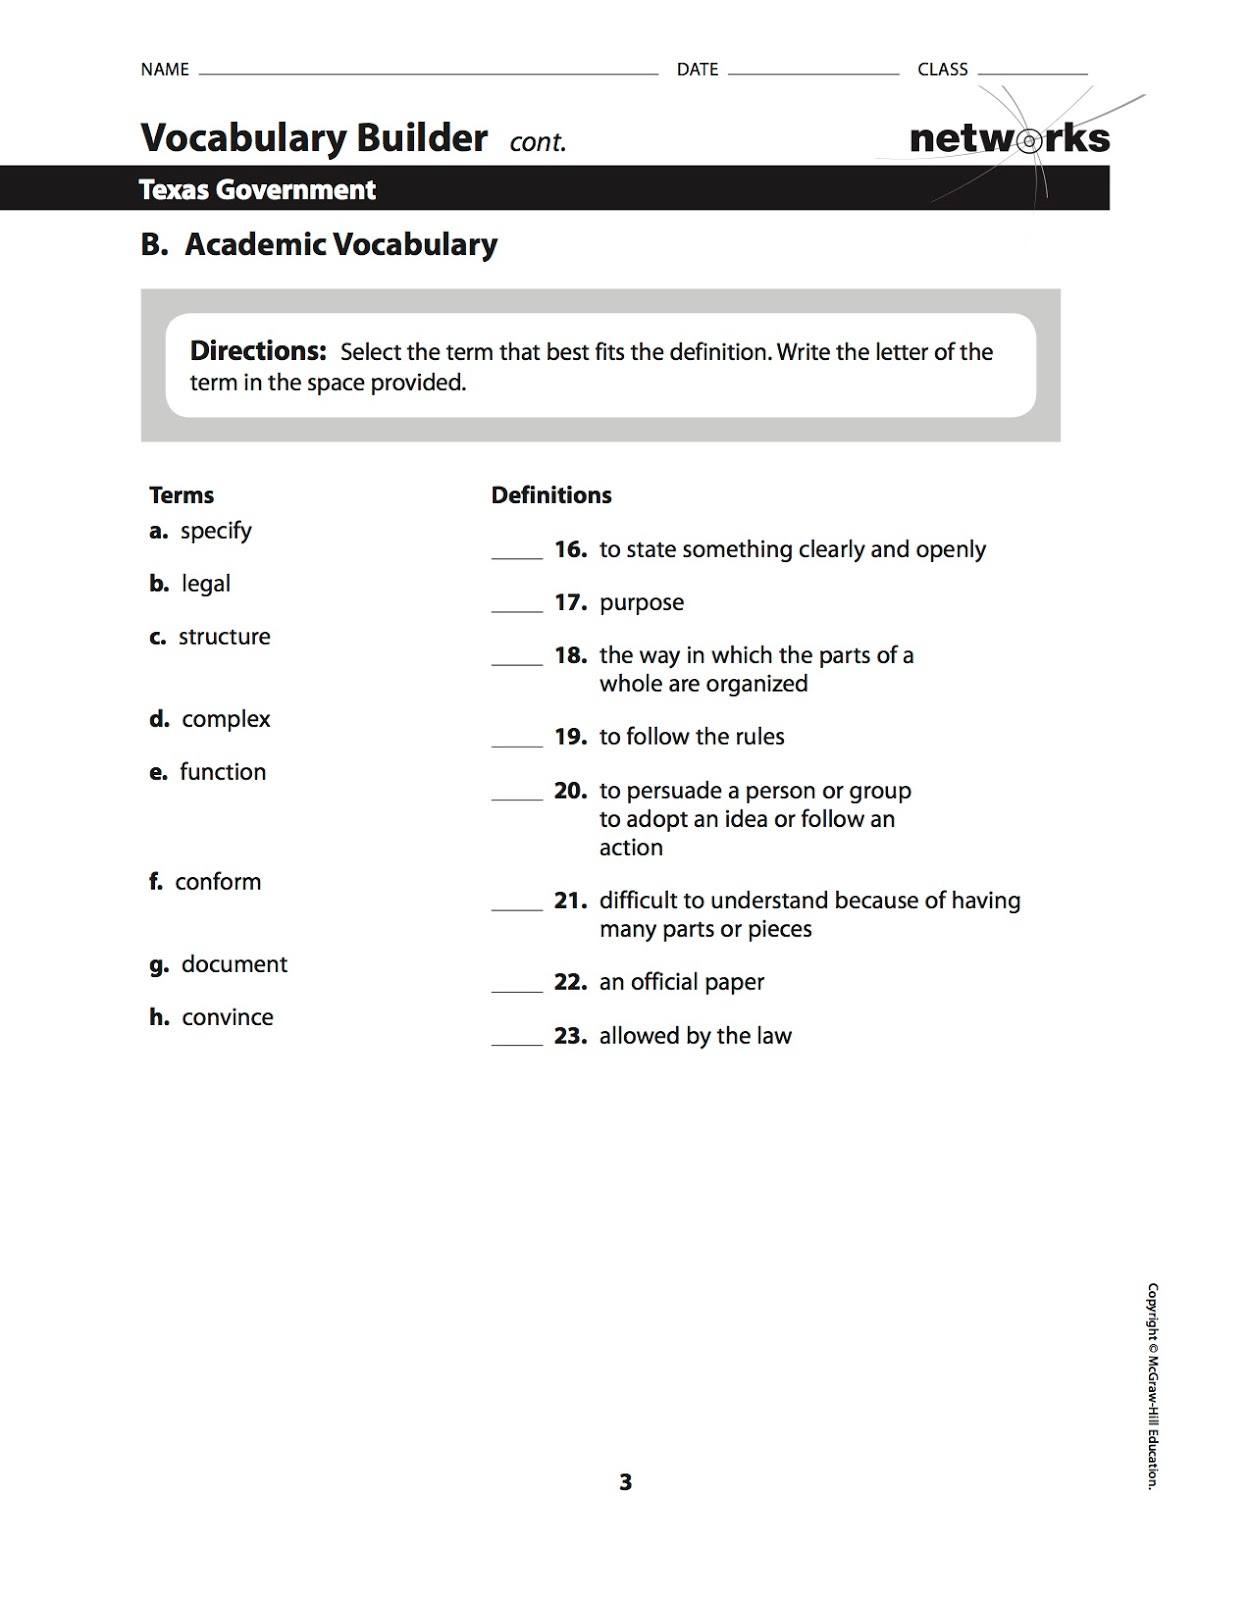 Vocabulary Builder Worksheet Answers vocabulary builder – Vocabulary Builder Worksheets